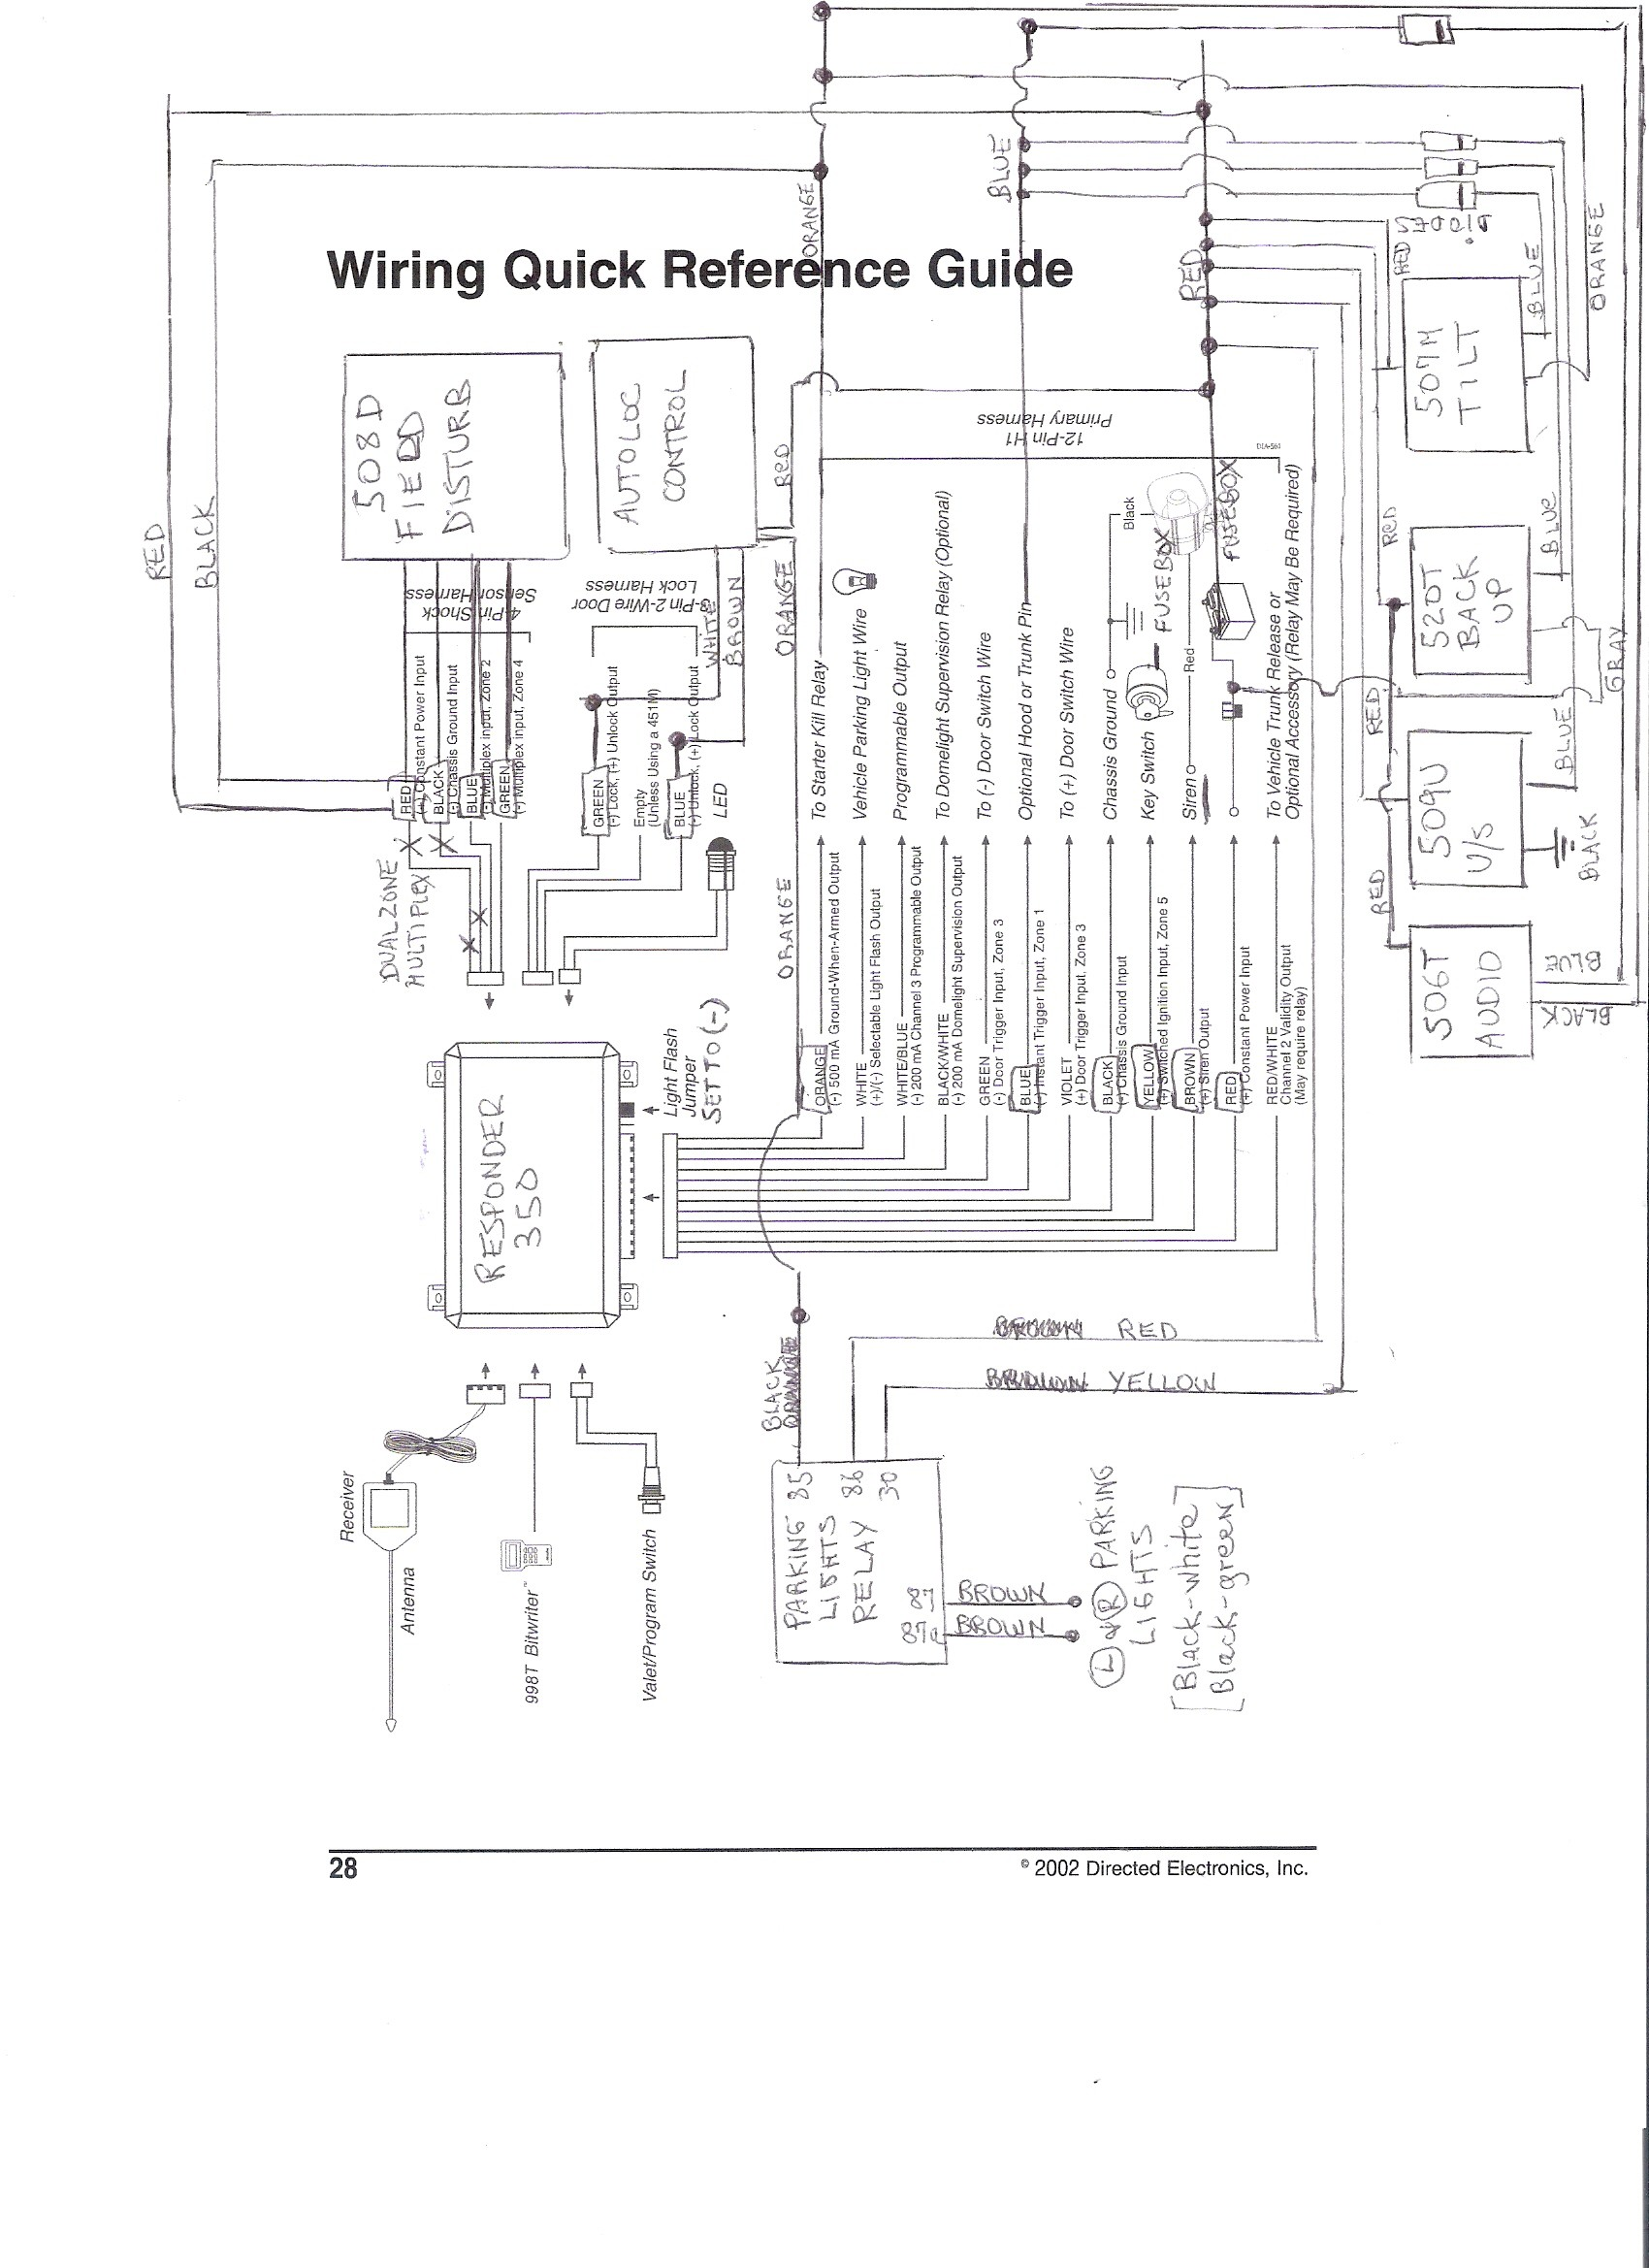 Car Security System Wiring Diagram Pagoda Sl Group Technical Manual Accessories Of Car Security System Wiring Diagram